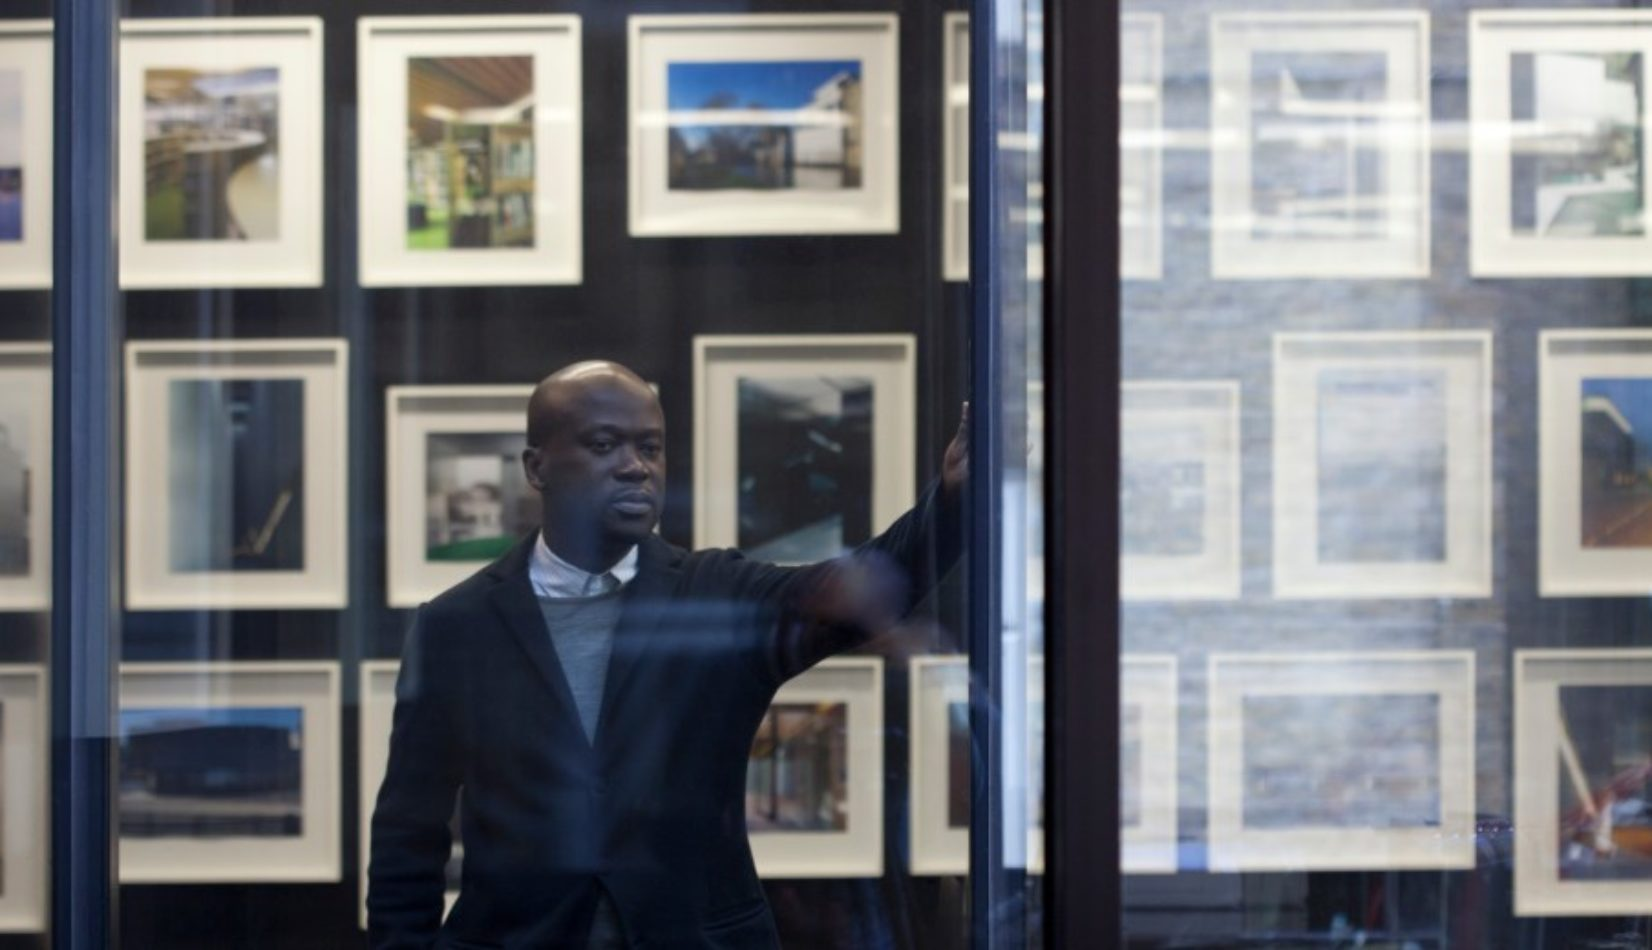 Portrait of David Adjaye looking out a window with his hand up on the wall. Framed pictures cover the walls behind him.